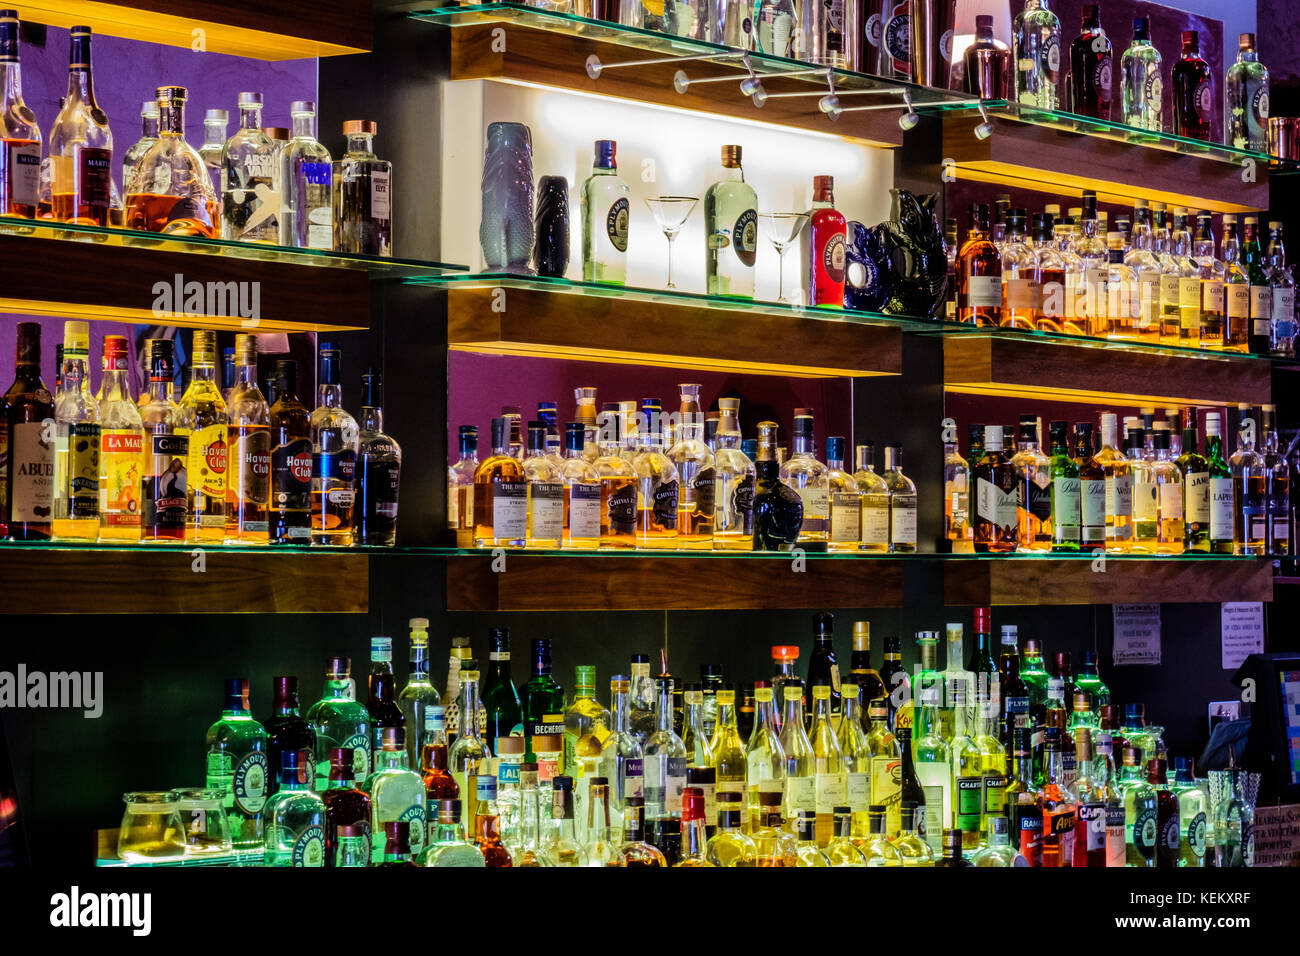 The Gin Bar of the Plymouth Gin Distillery, the Barbican, Plymouth, Devon, England, UK - Stock Image